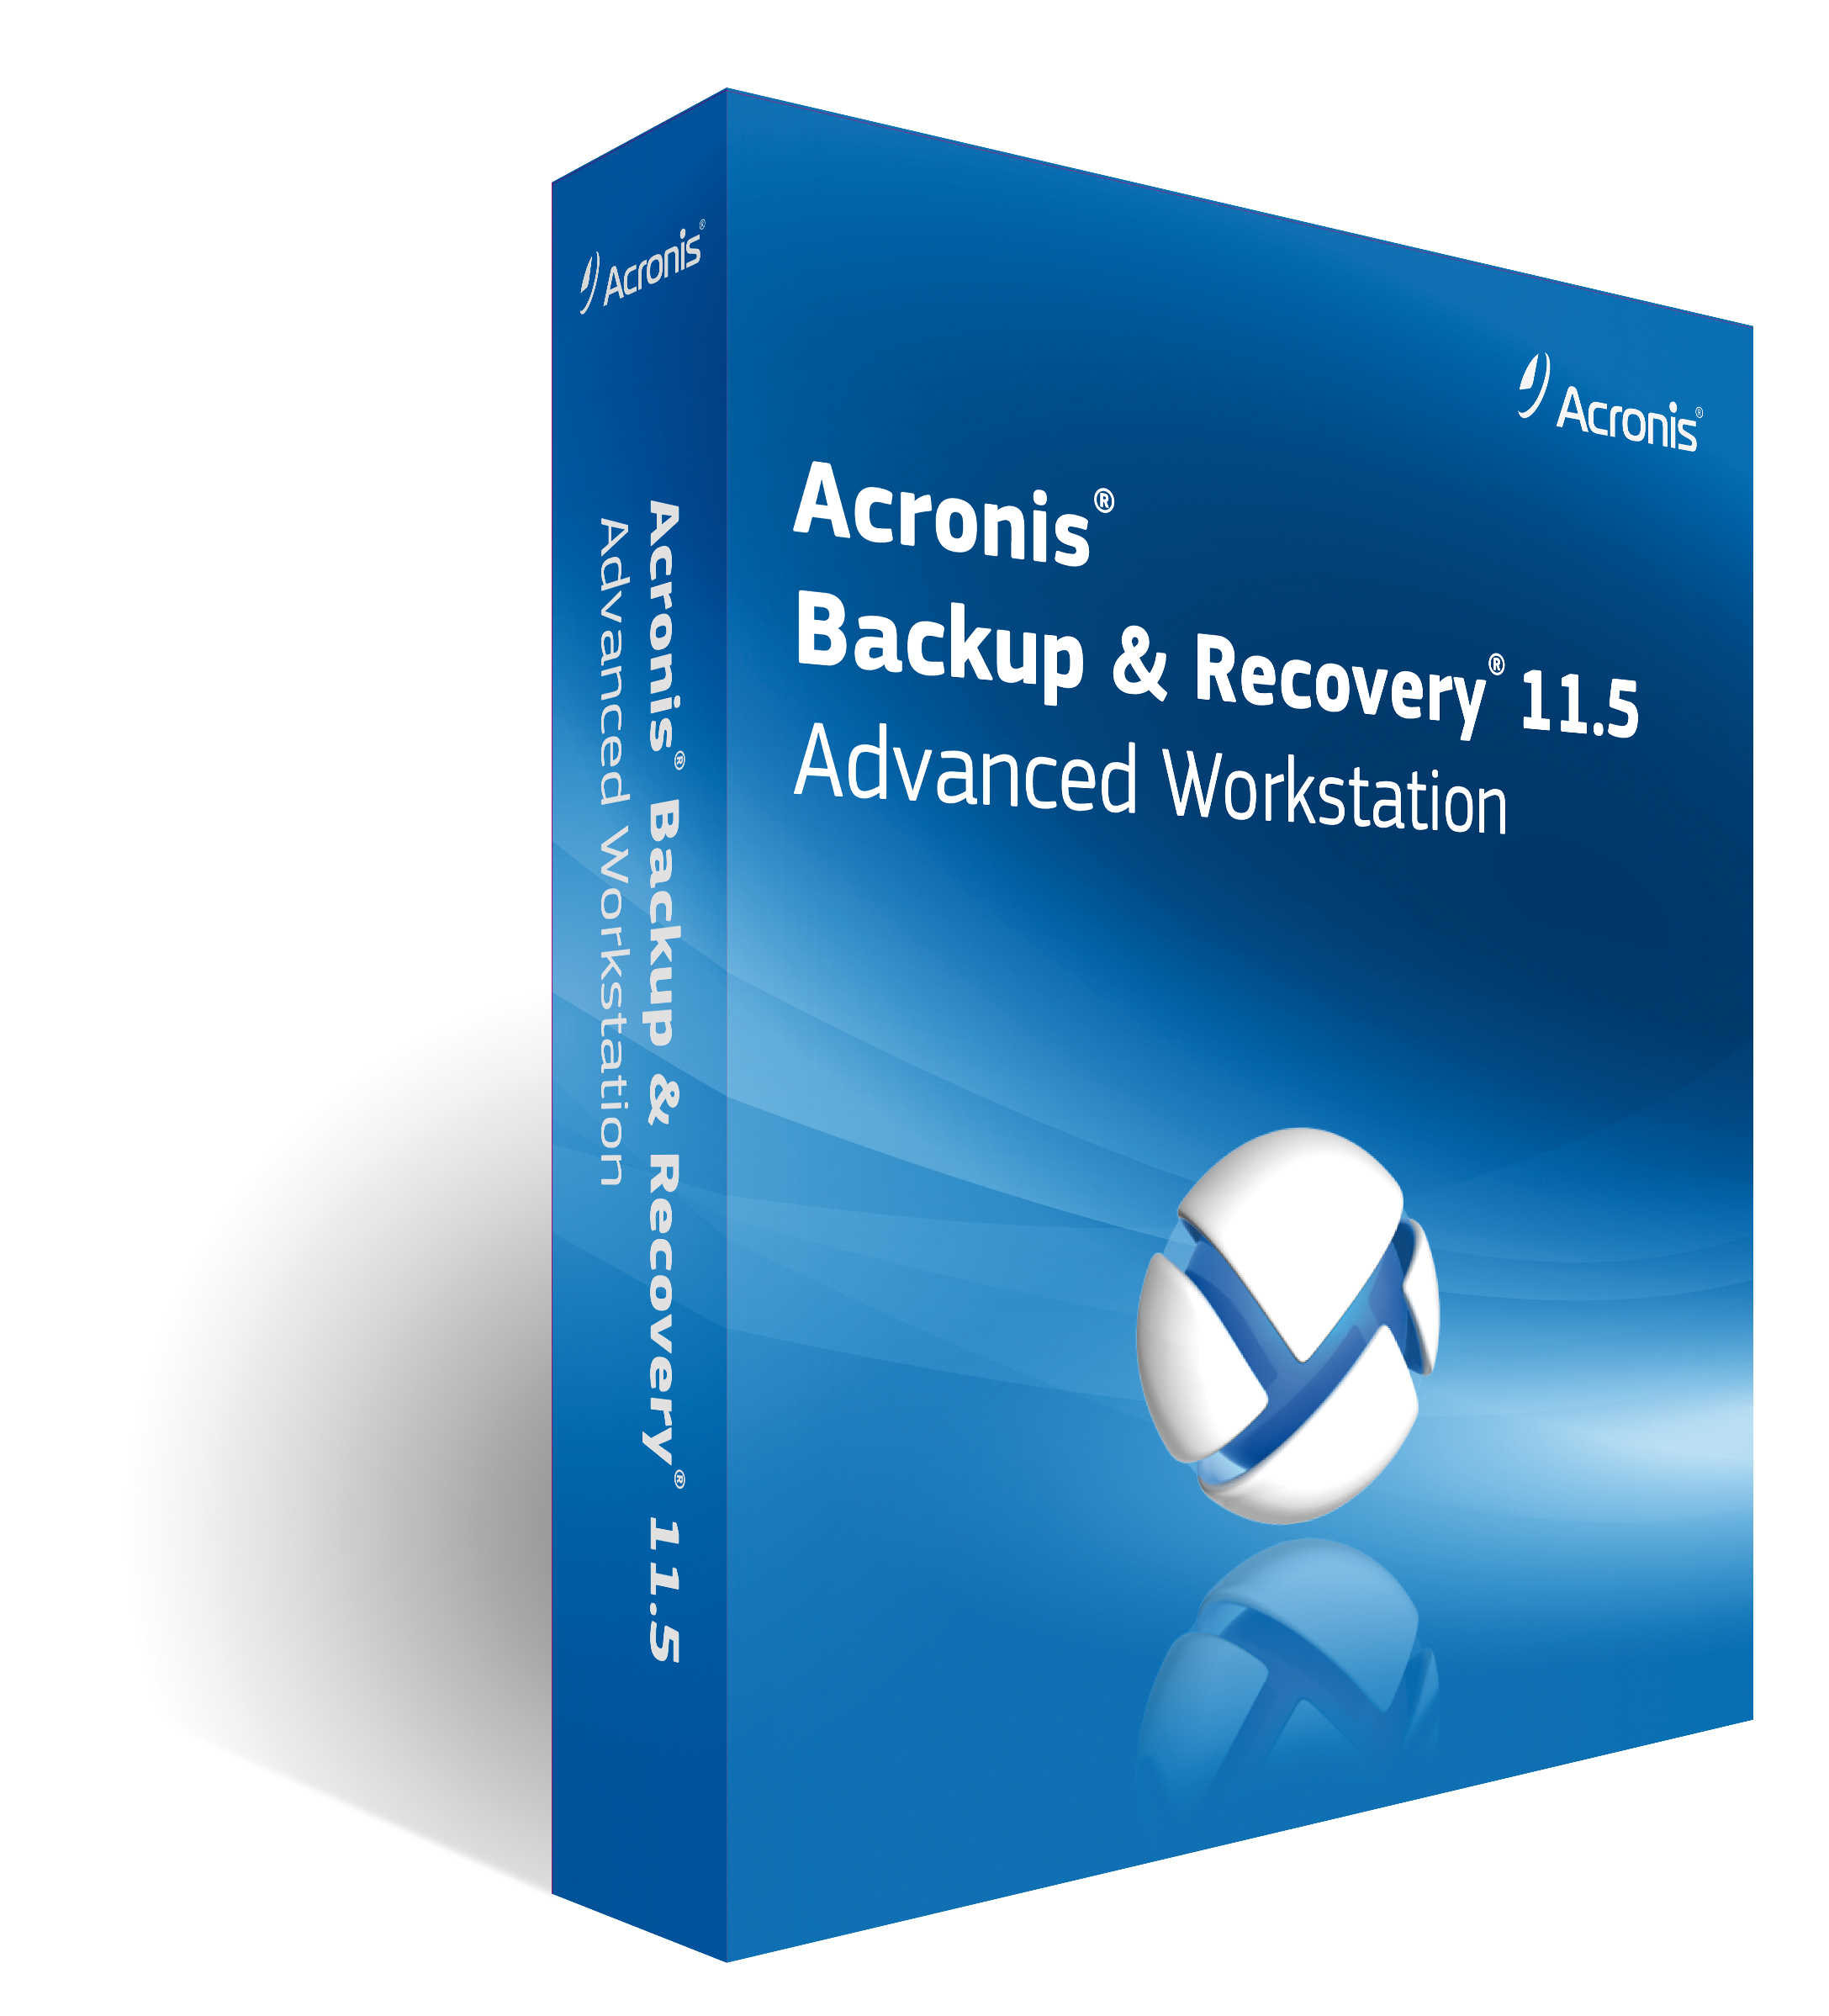 acronis backup & recovery 11.5 keygen